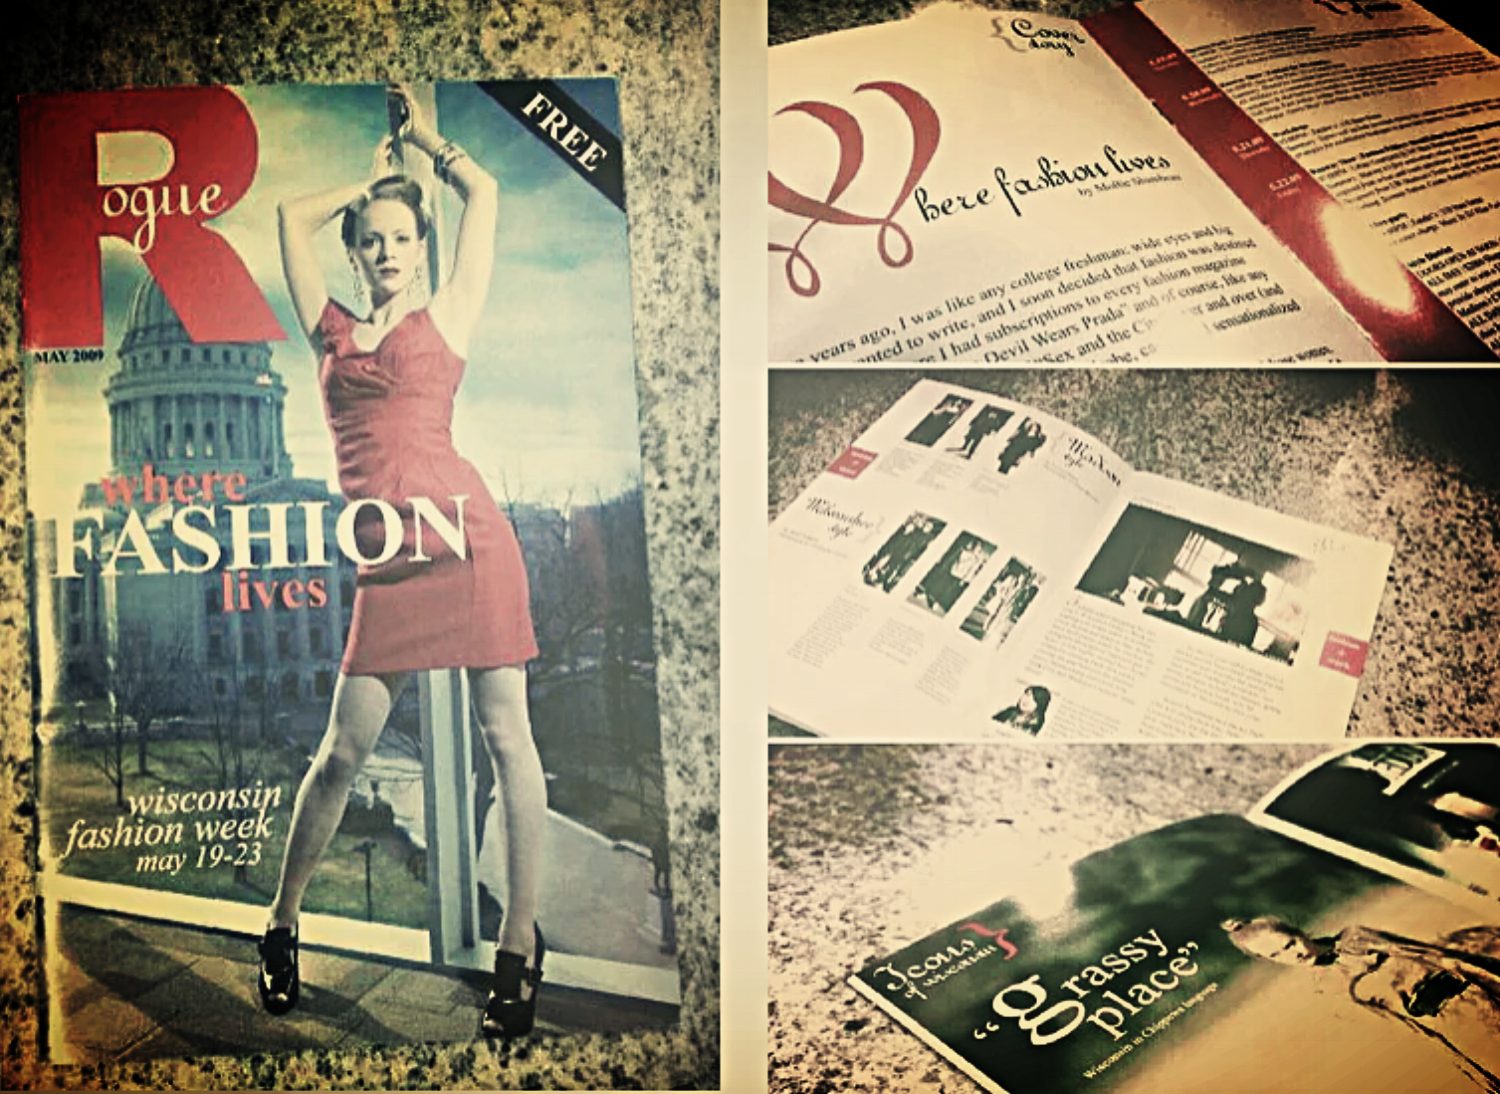 In 2009, I spearheaded the creation of    Rogue   , a fashion magazine designed to promote Wisconsin Fashion Week 2009. In addition to recruiting all the writers, coordinating a street fashion spread, and editing the articles, I wrote several pieces in the publication. It served as the program for Wisconsin Fashion Week, May 19-23, 2009.